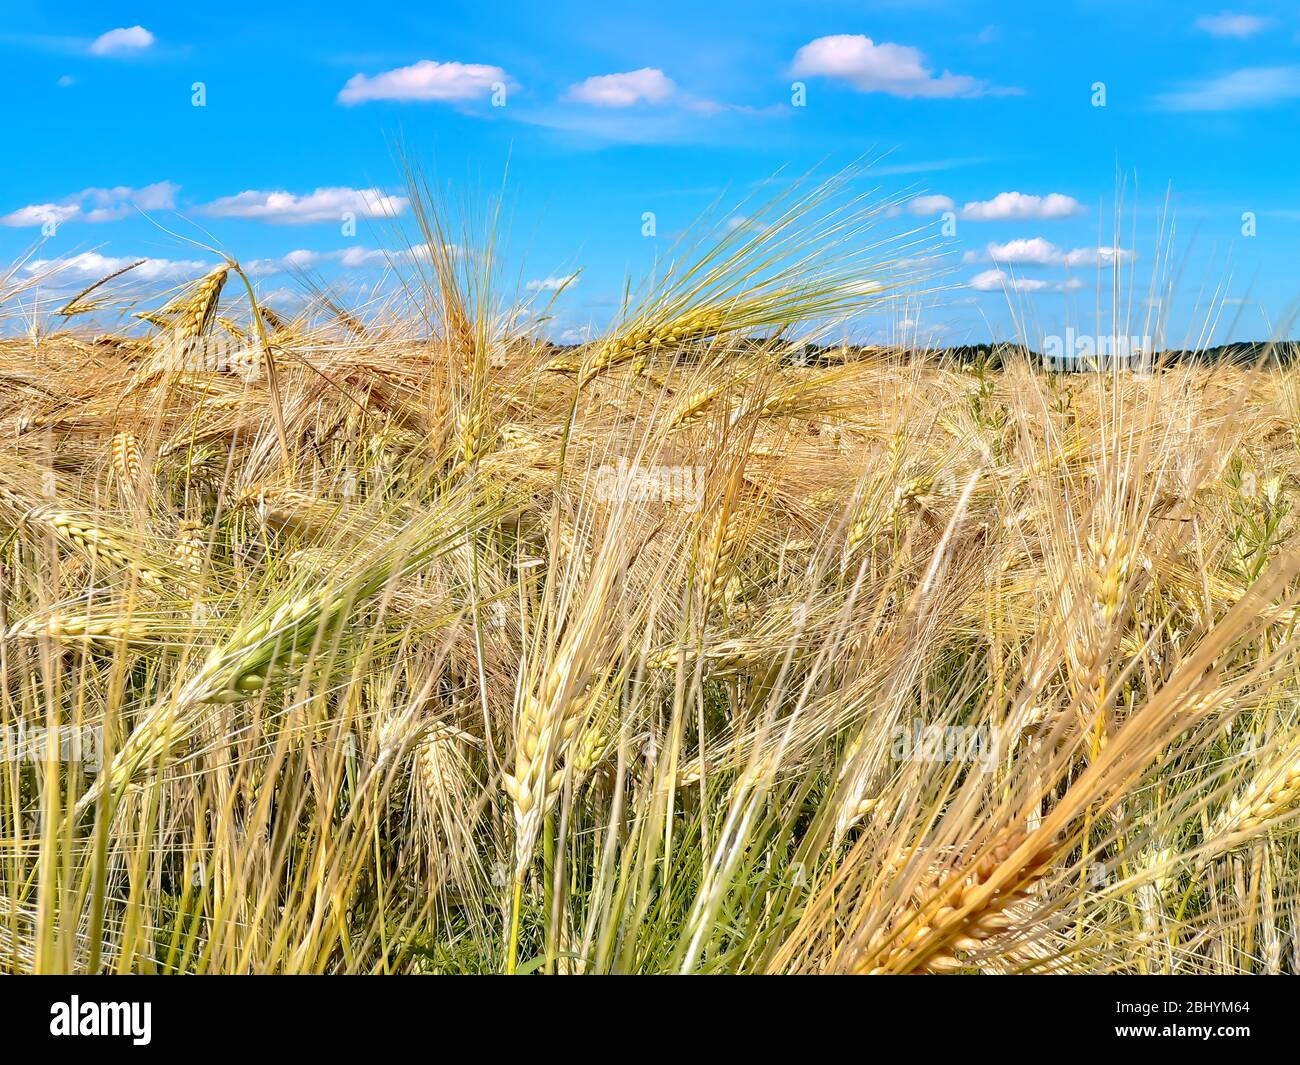 A grain field ripening for harvest under the blue sky. Stock Photo